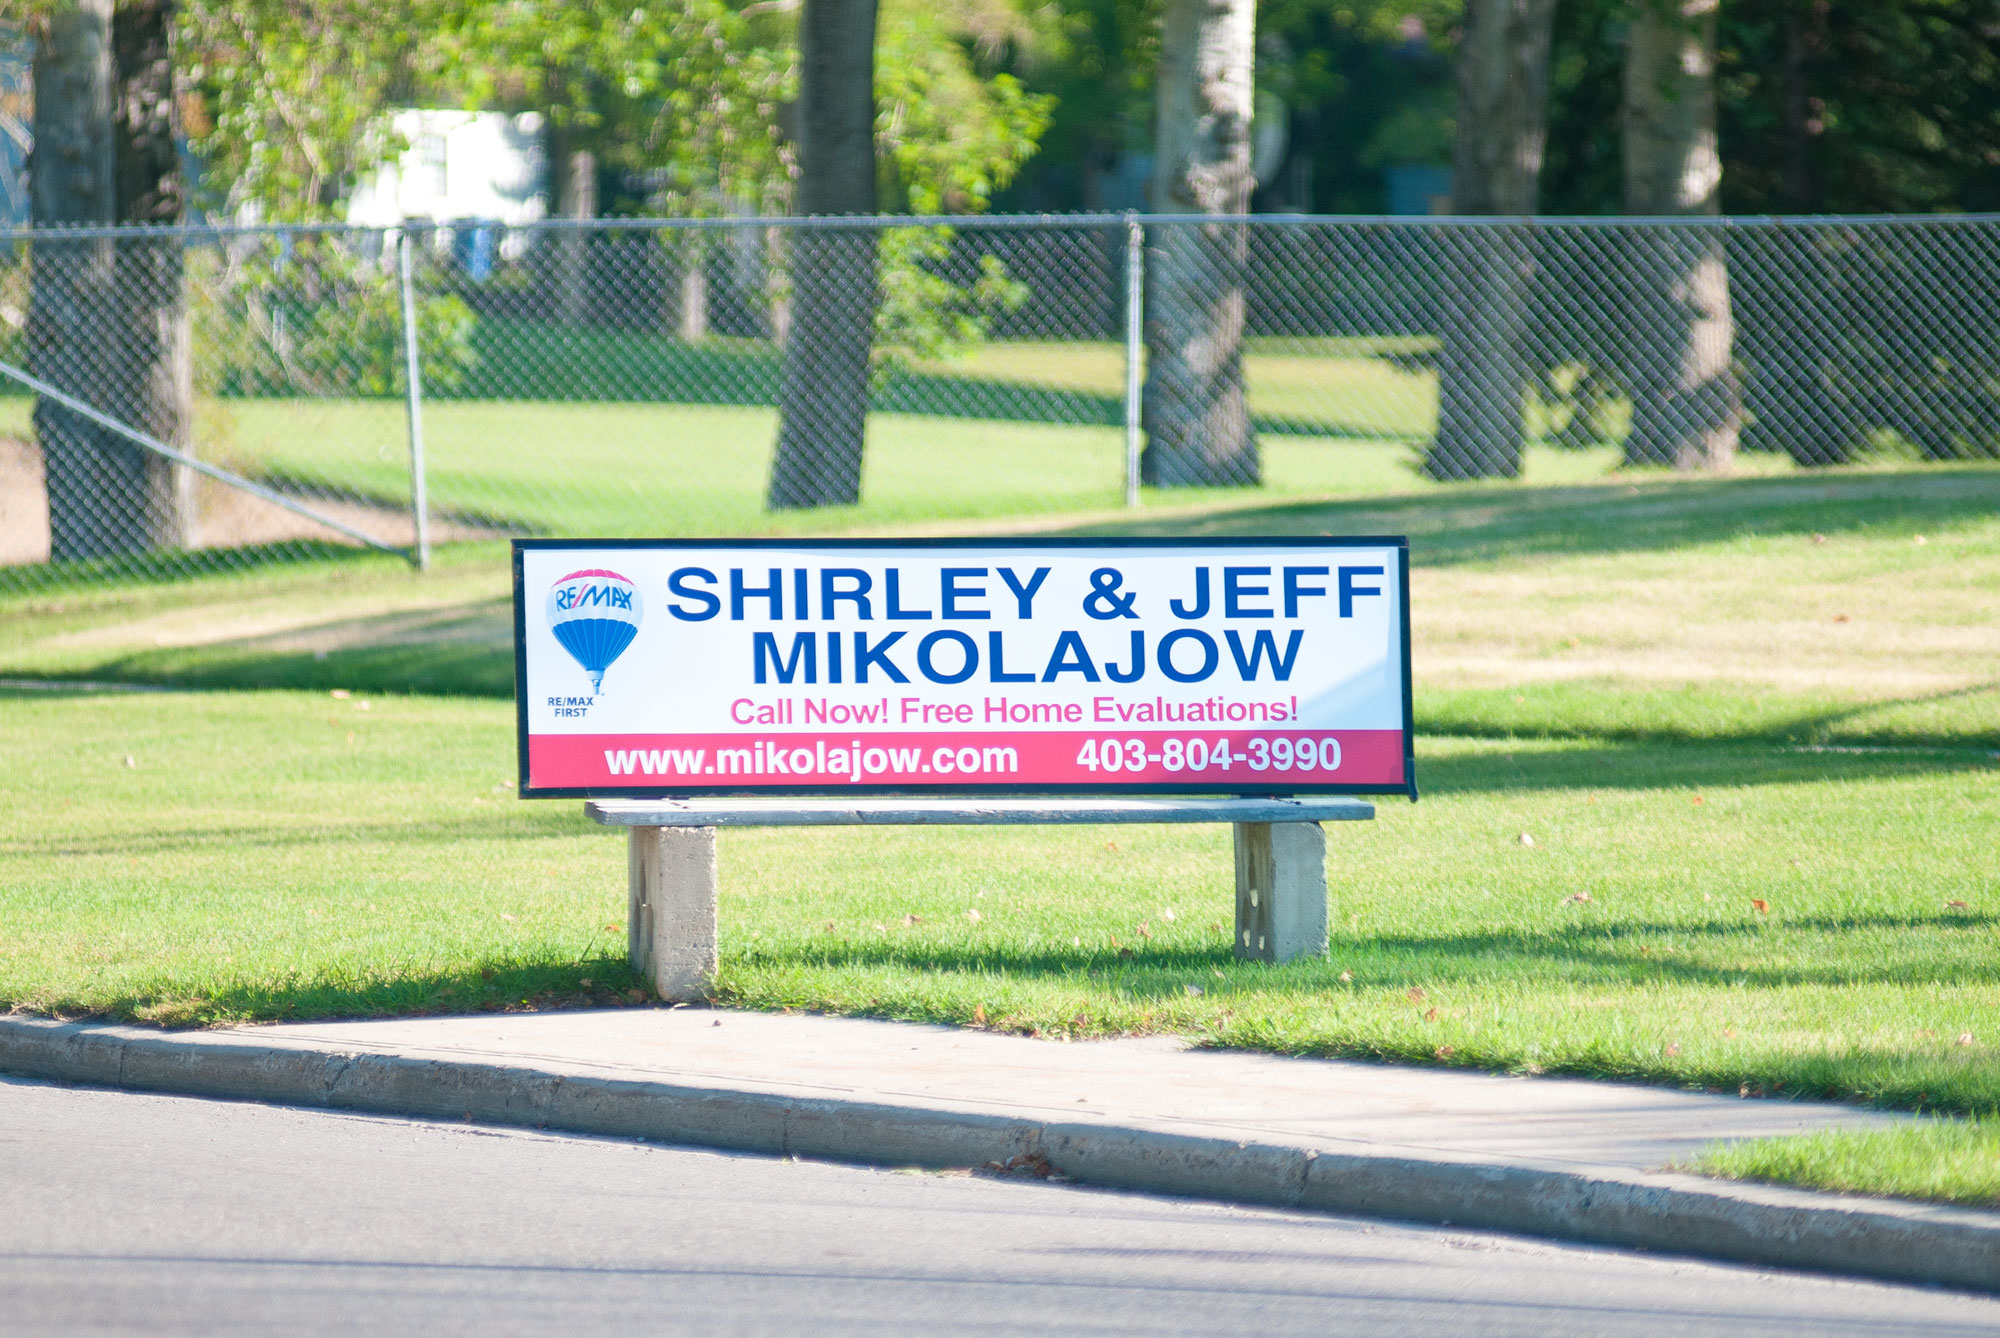 Calgary Real Estate Marketing Shirley Mikolajow Amp Jeff